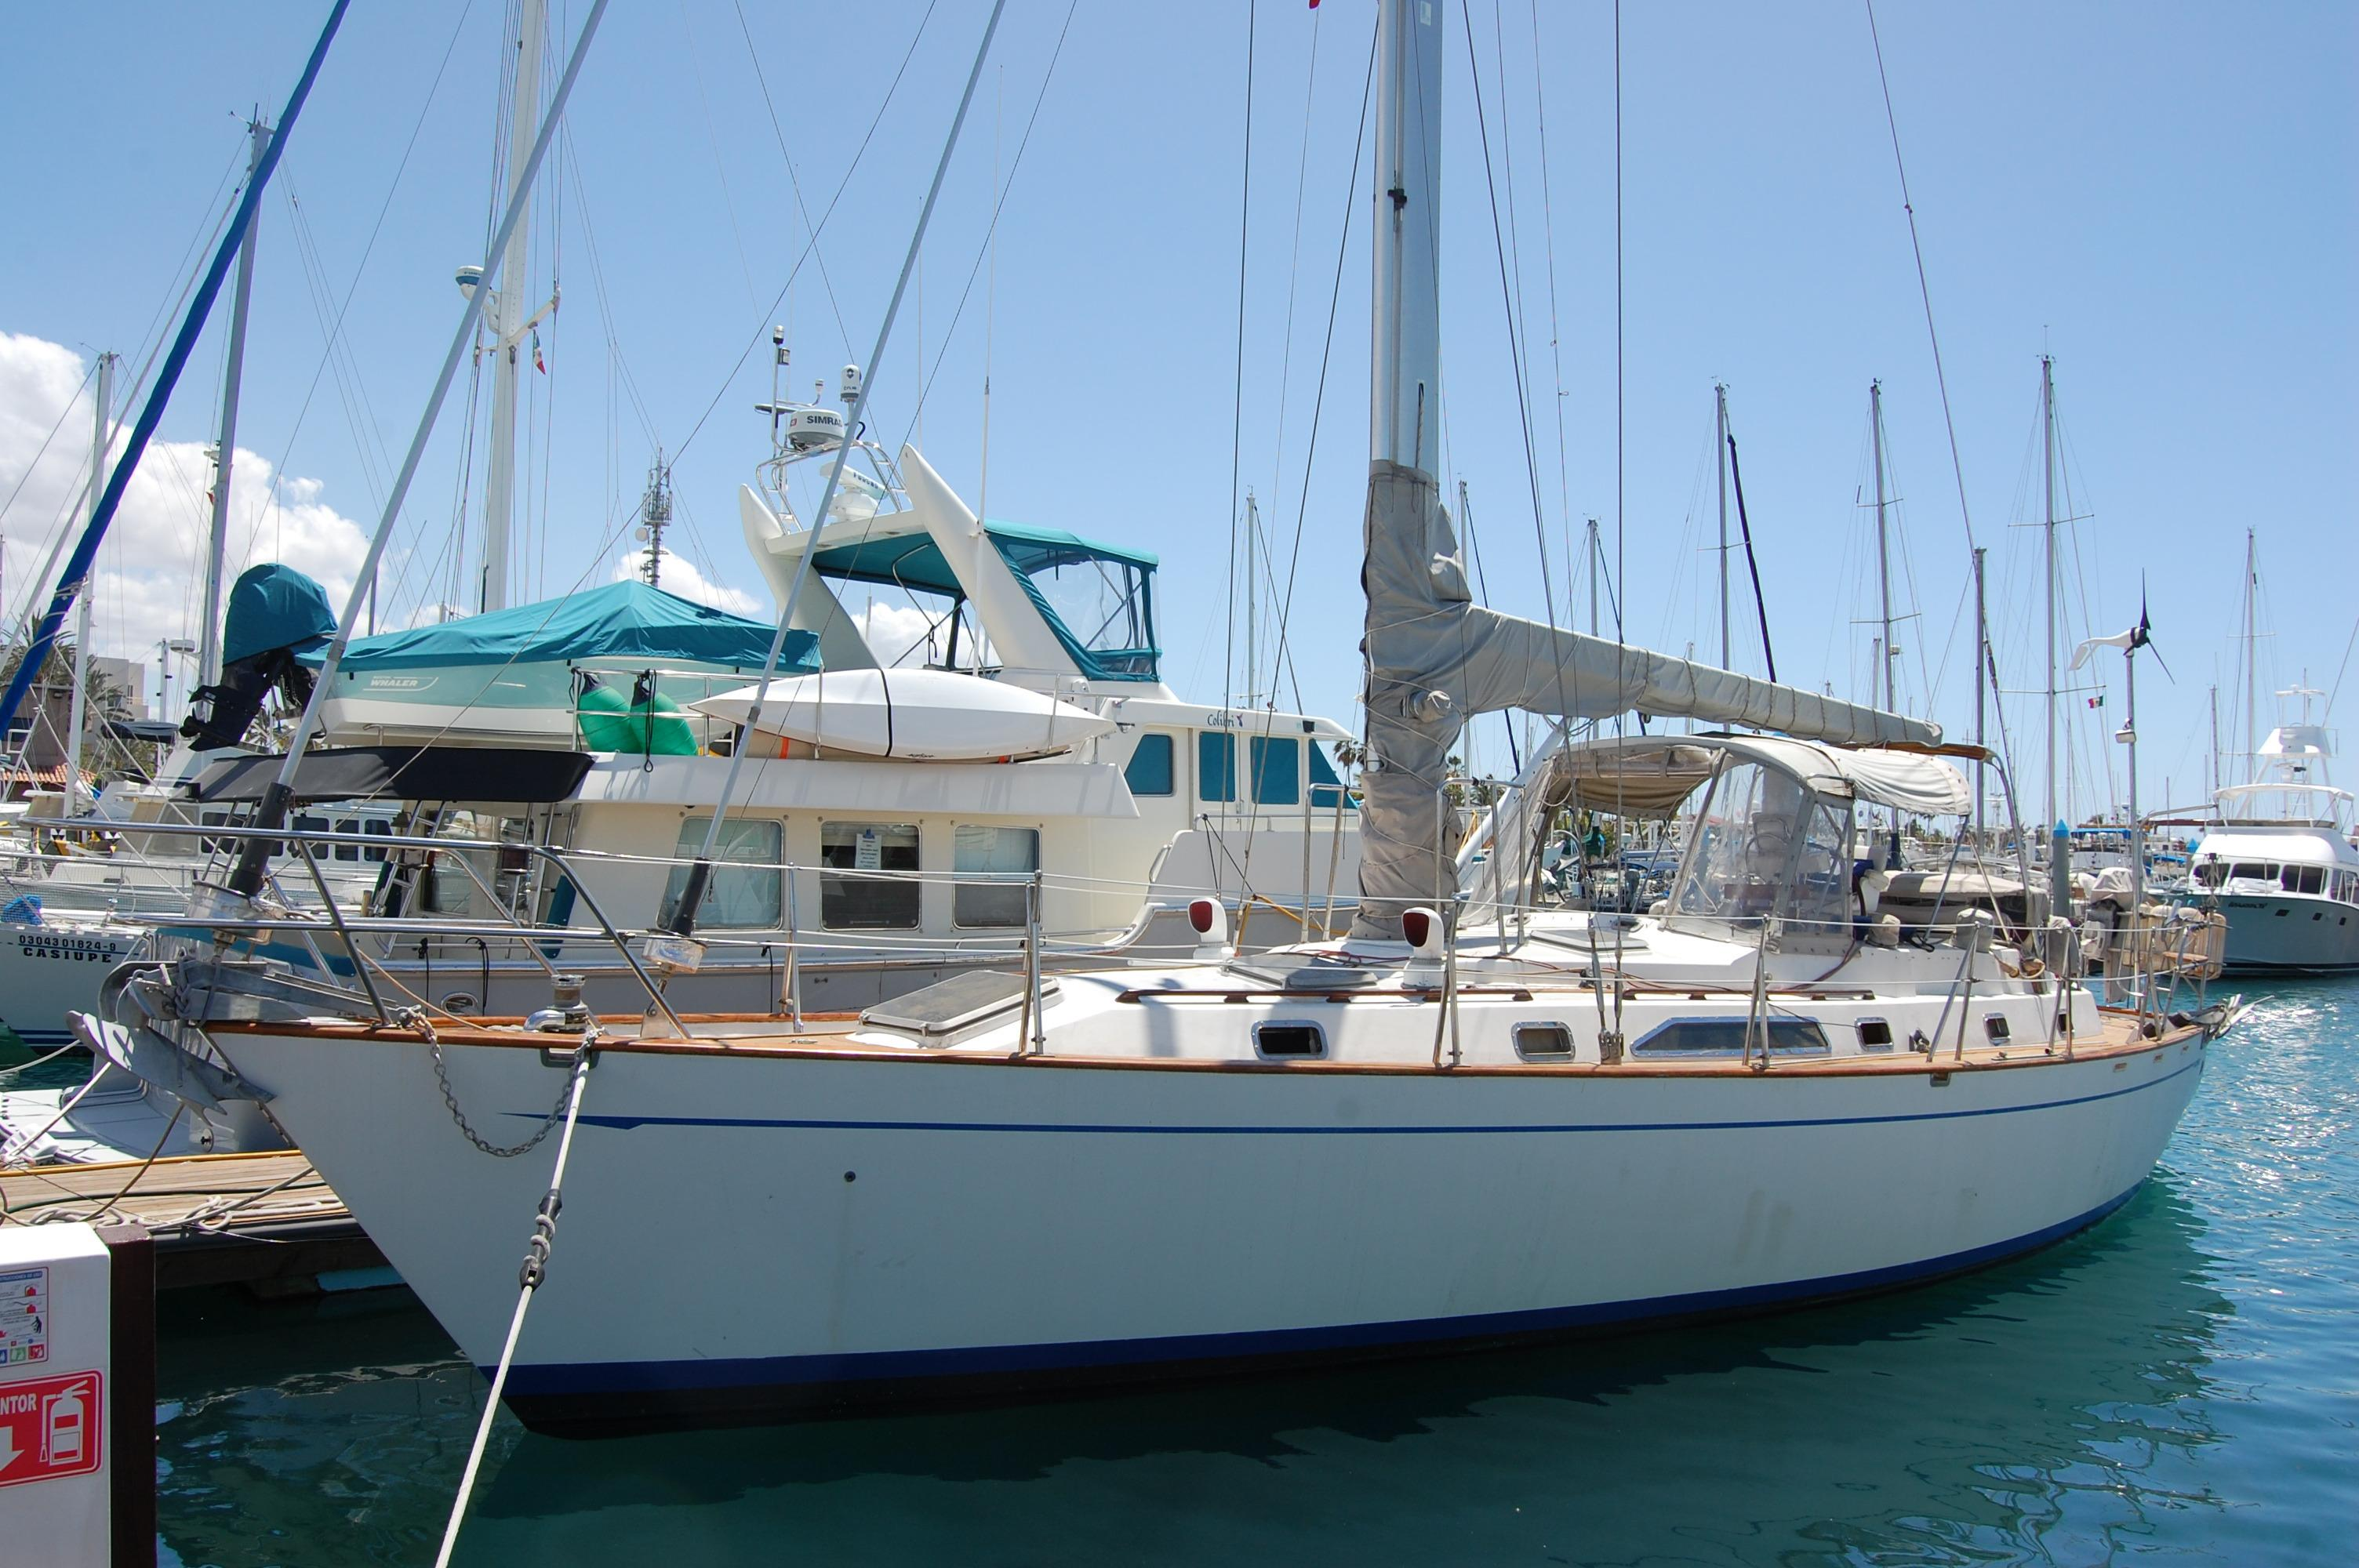 47' Tayana Center Cockpit Cutter+Boat for sale!